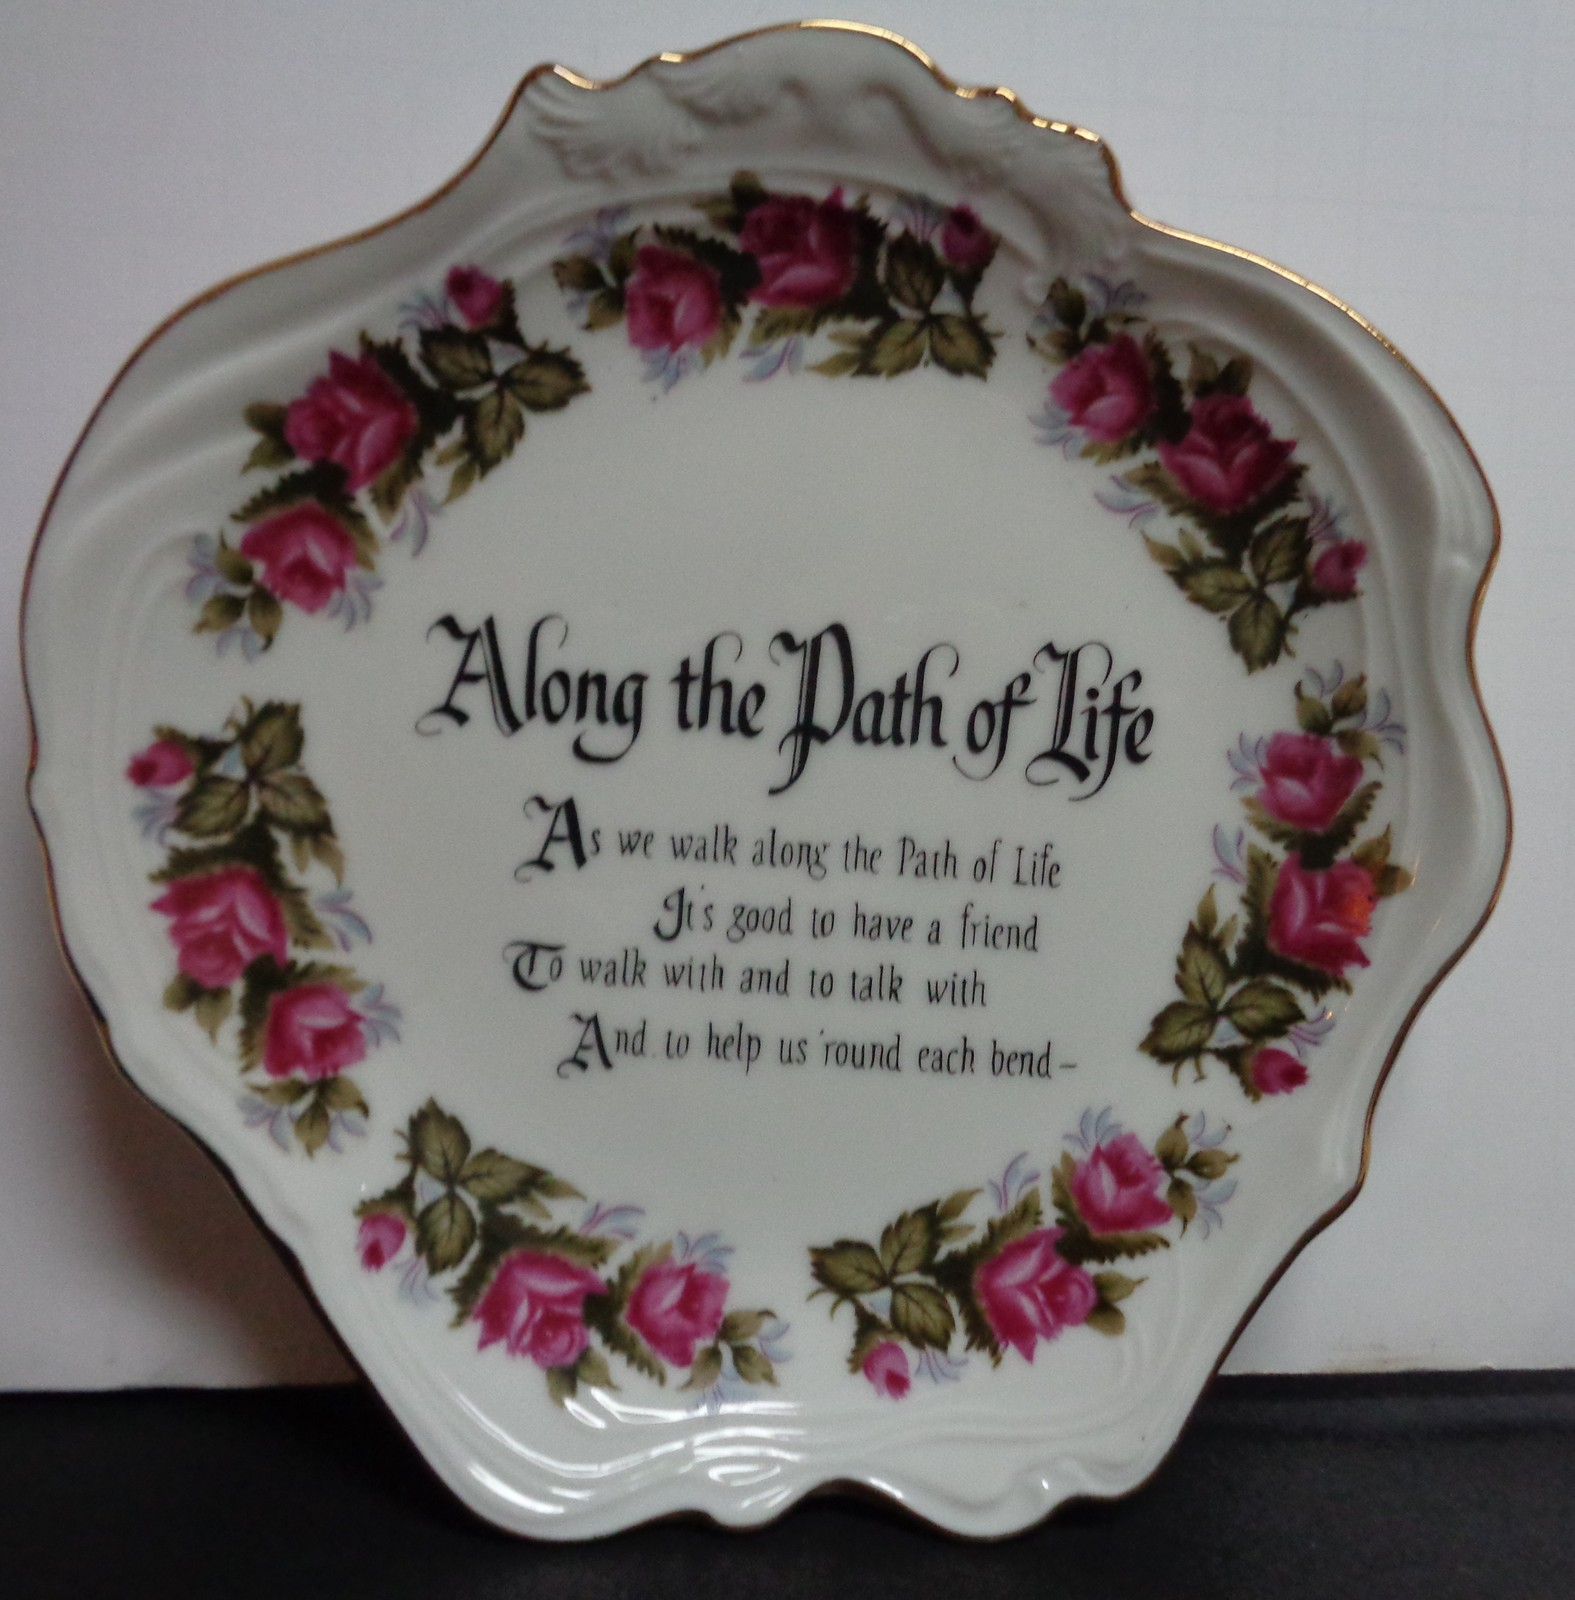 Norcrest 1970 Fine China Wall Decor Plate ALONG THE PATH OF LIFE Made in Japan